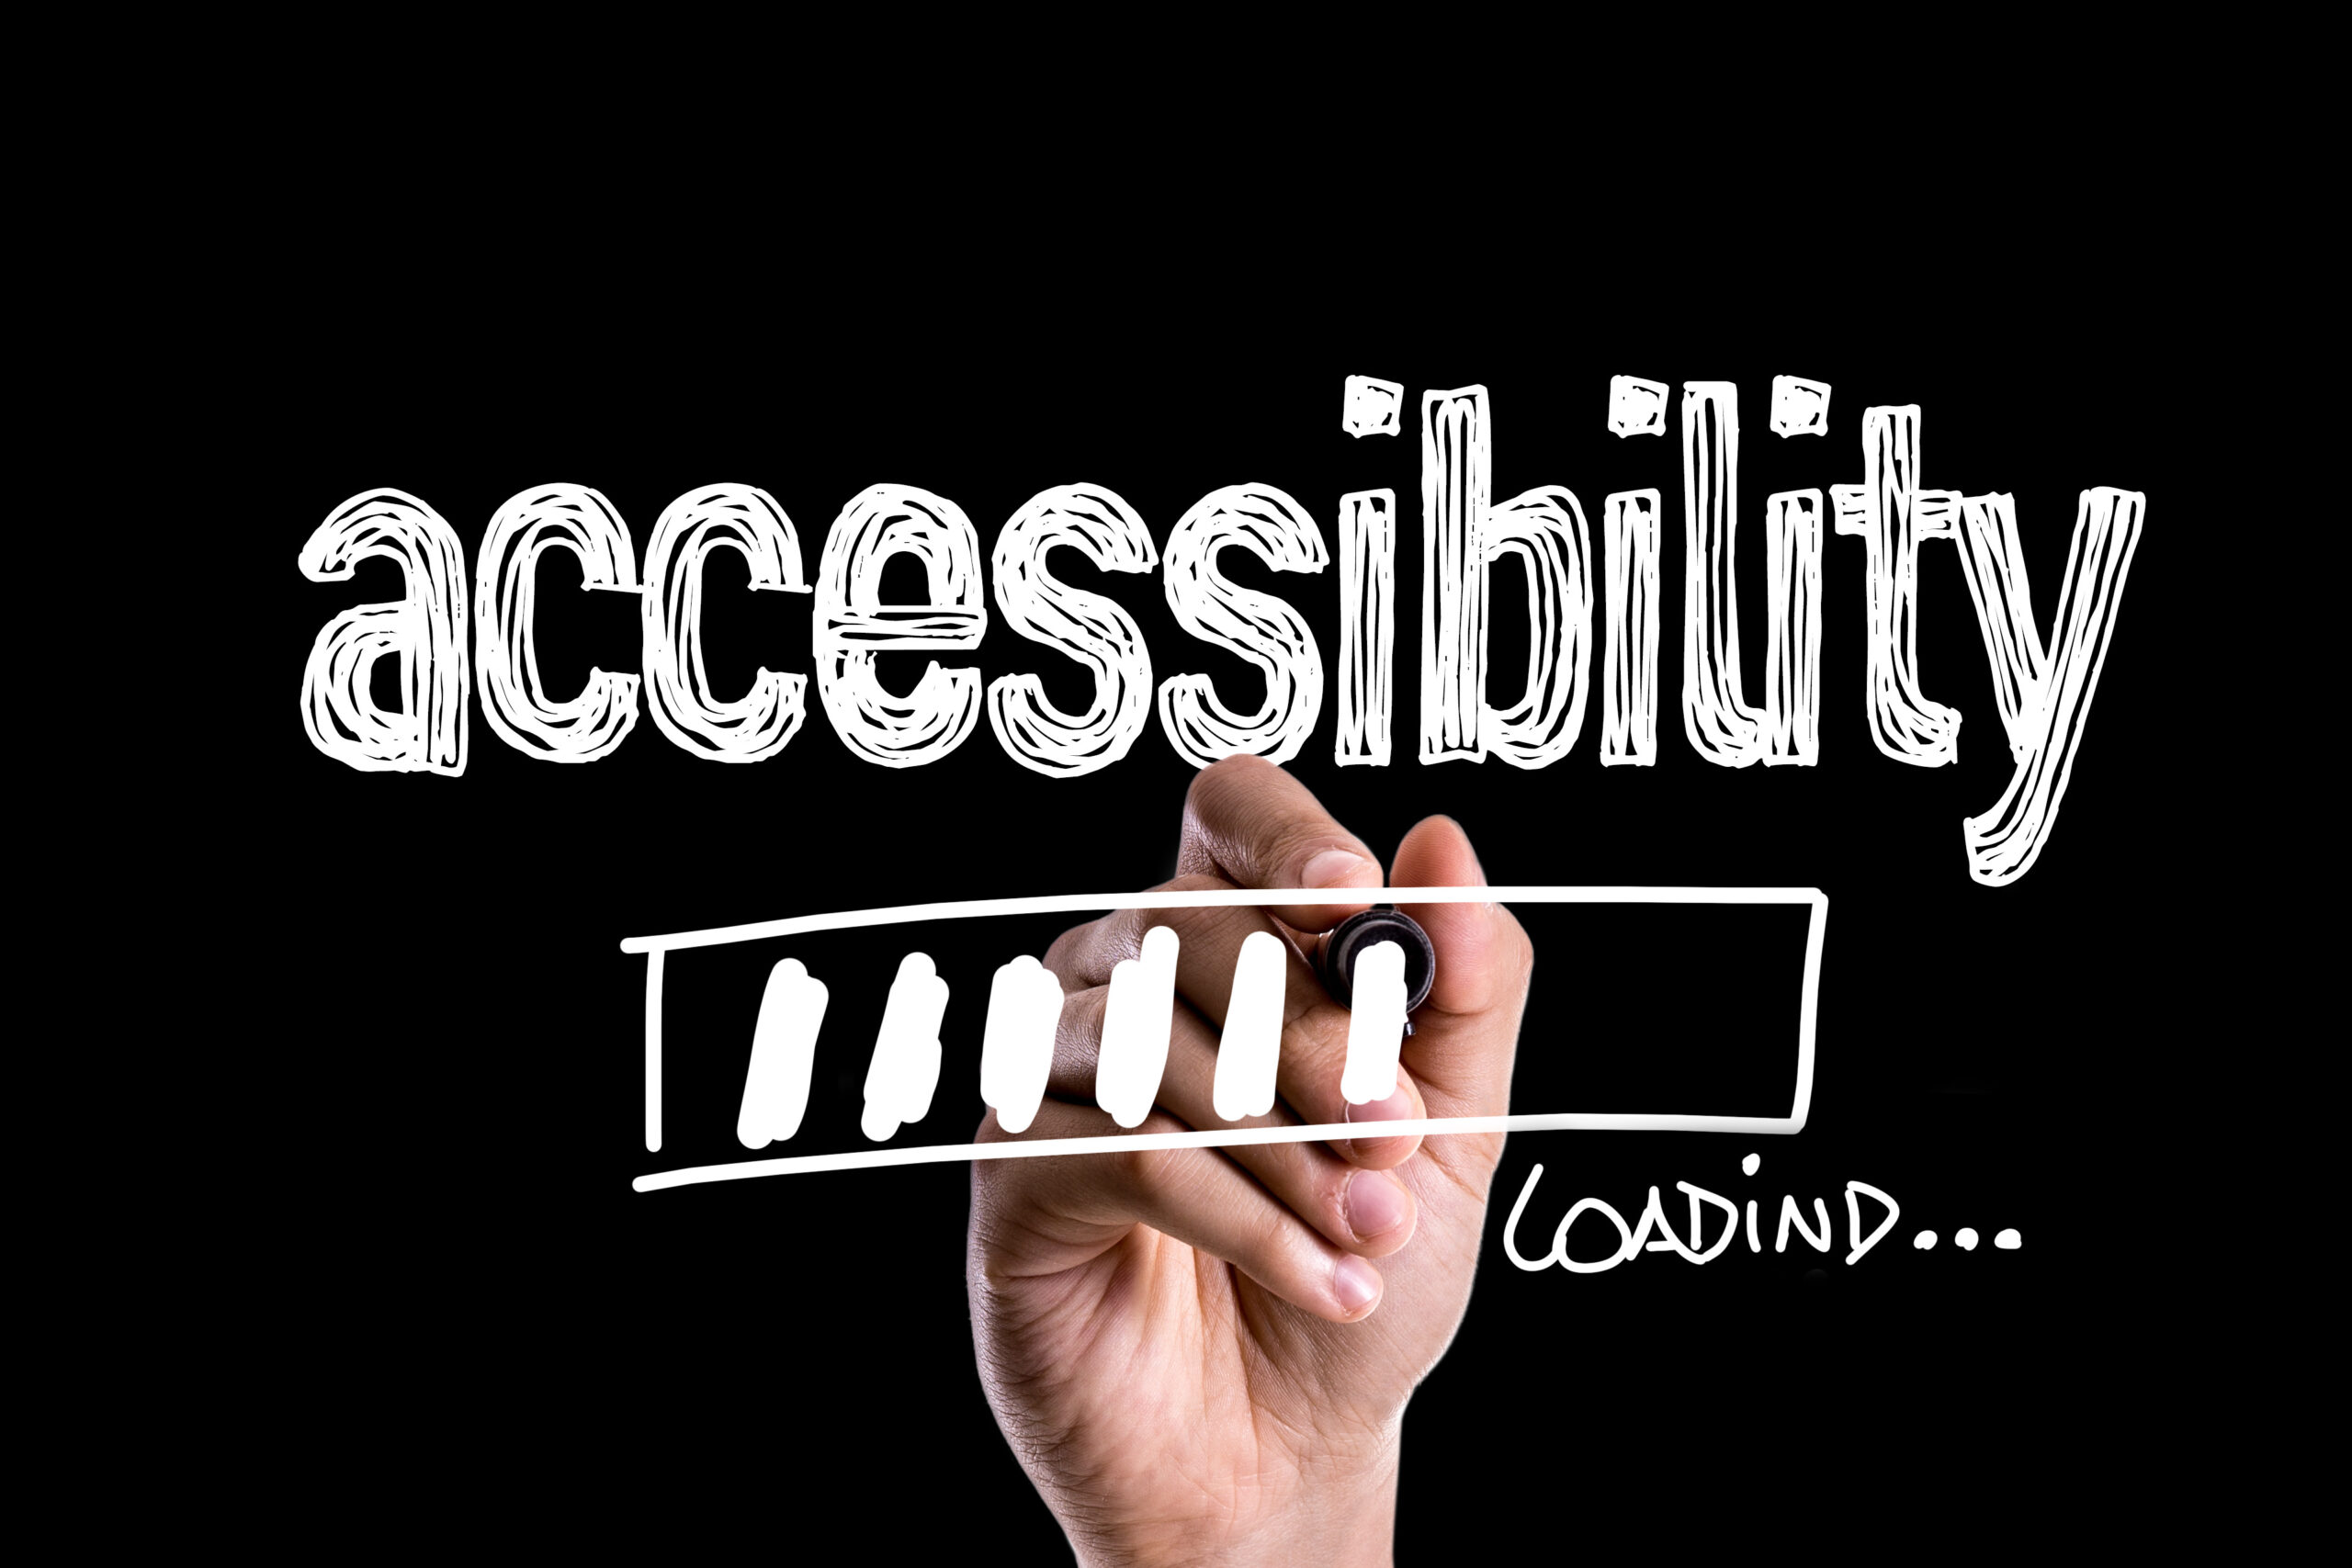 Web acessibility recruiting and hiring WCAG ADA